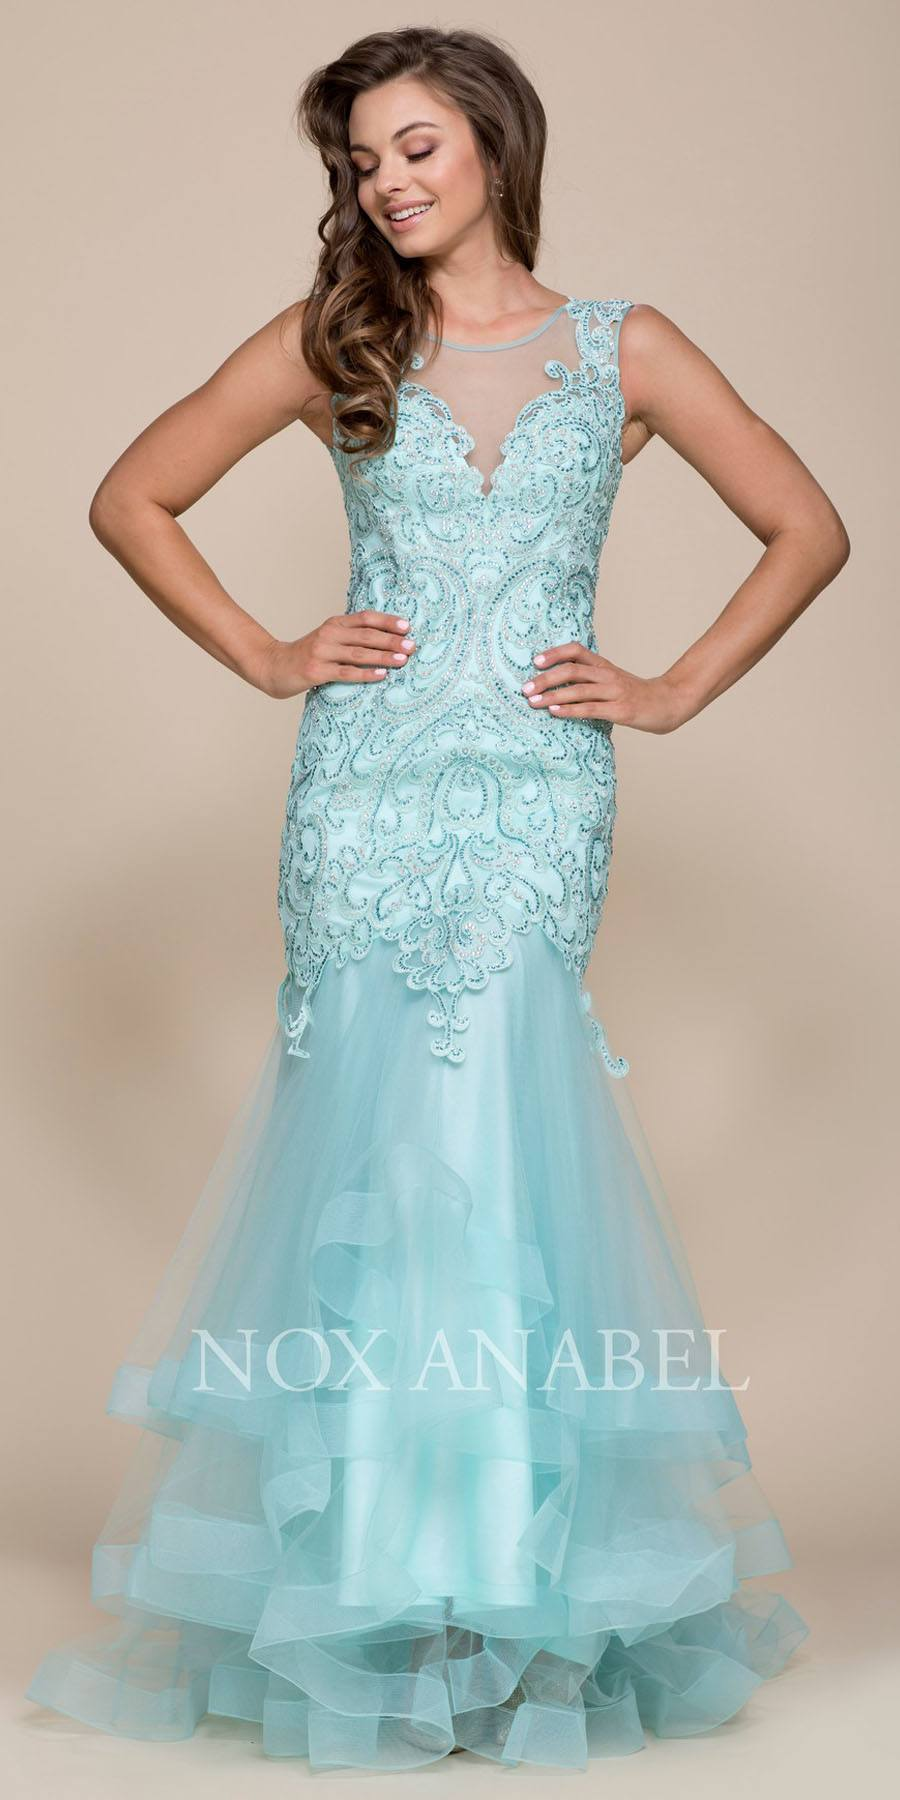 Nox Anabel Y021 Mint Green Illusion Mermaid Tiered Prom Gown with ...